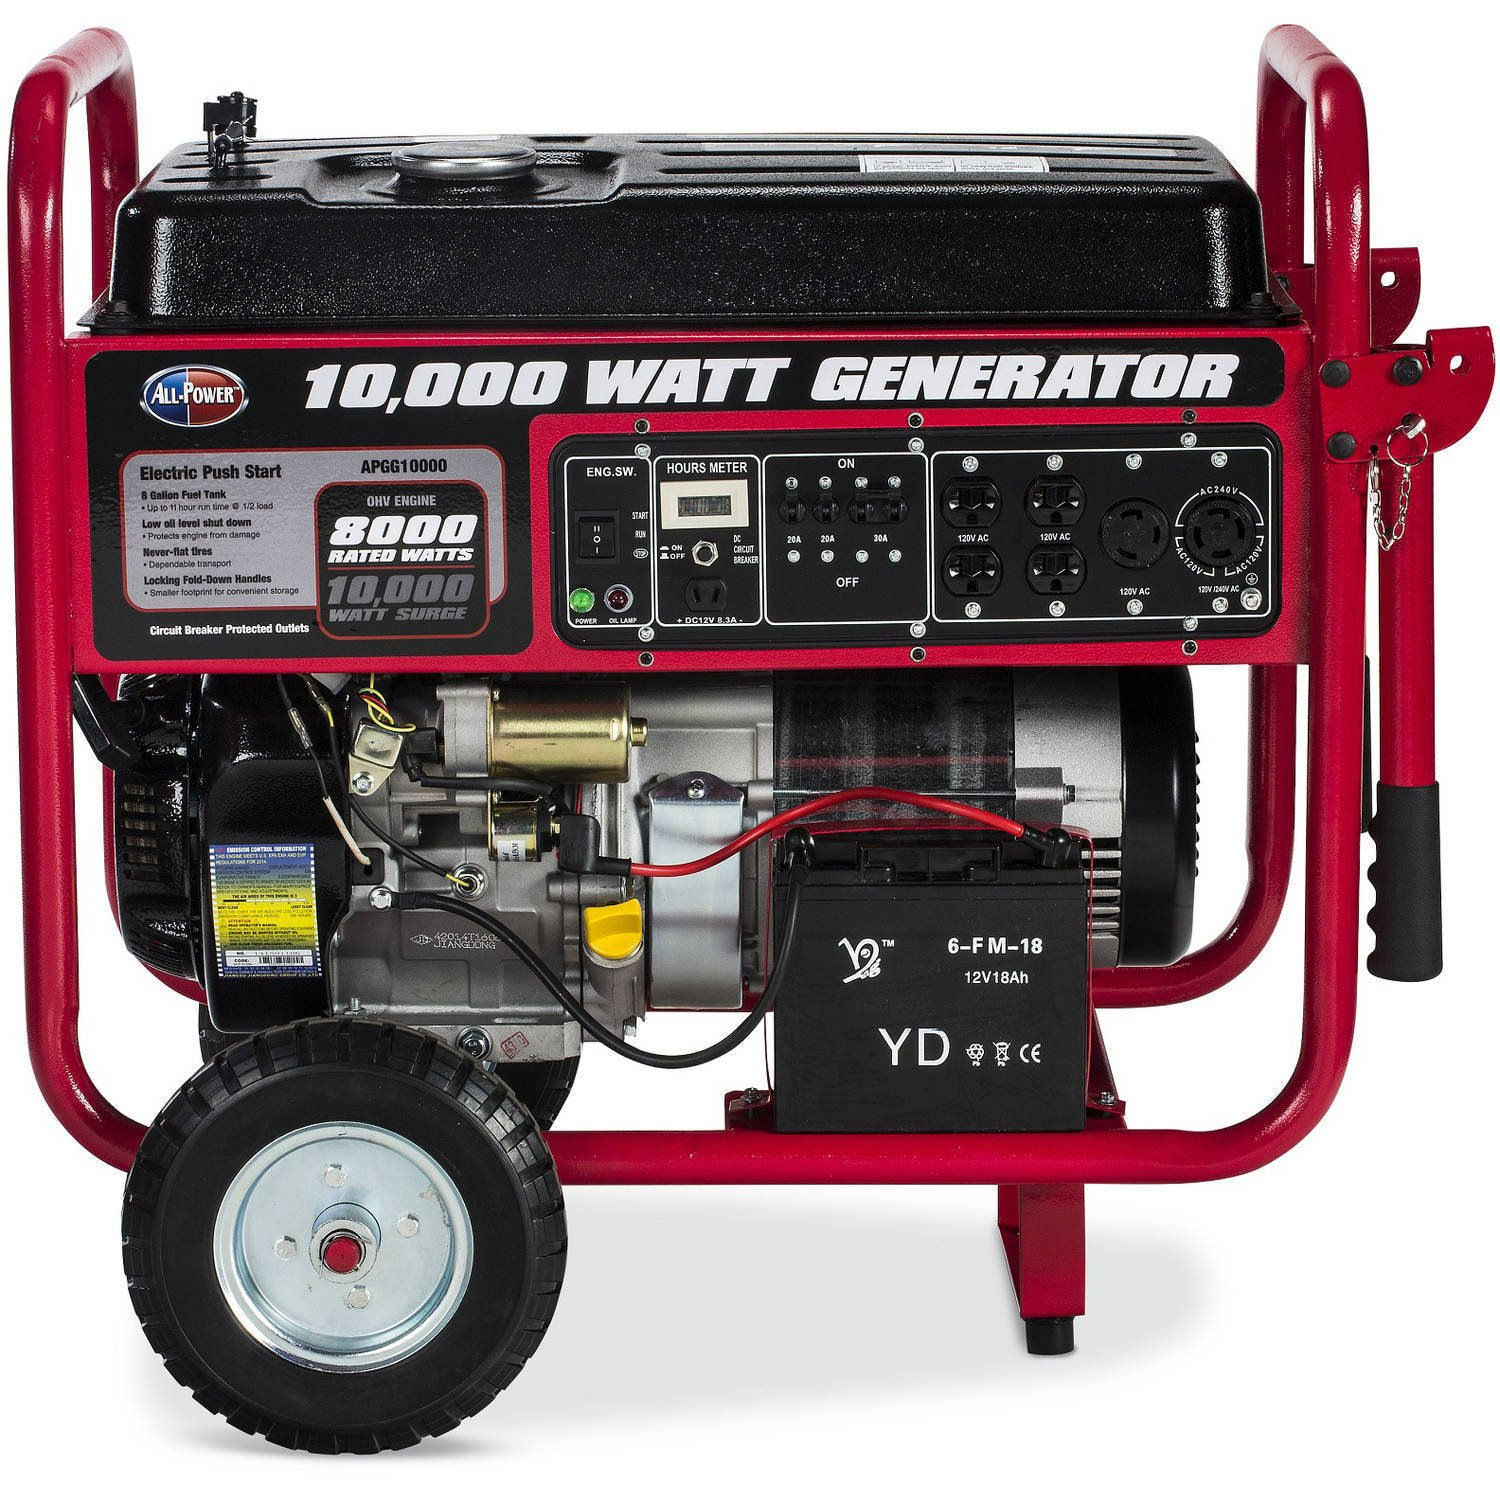 All Power America Apgg10000 10000w Watt Generator With Wiring Diagram For Onan 7500 Electric Start Portable Gas Home Use Emergency Backup Rv Standby